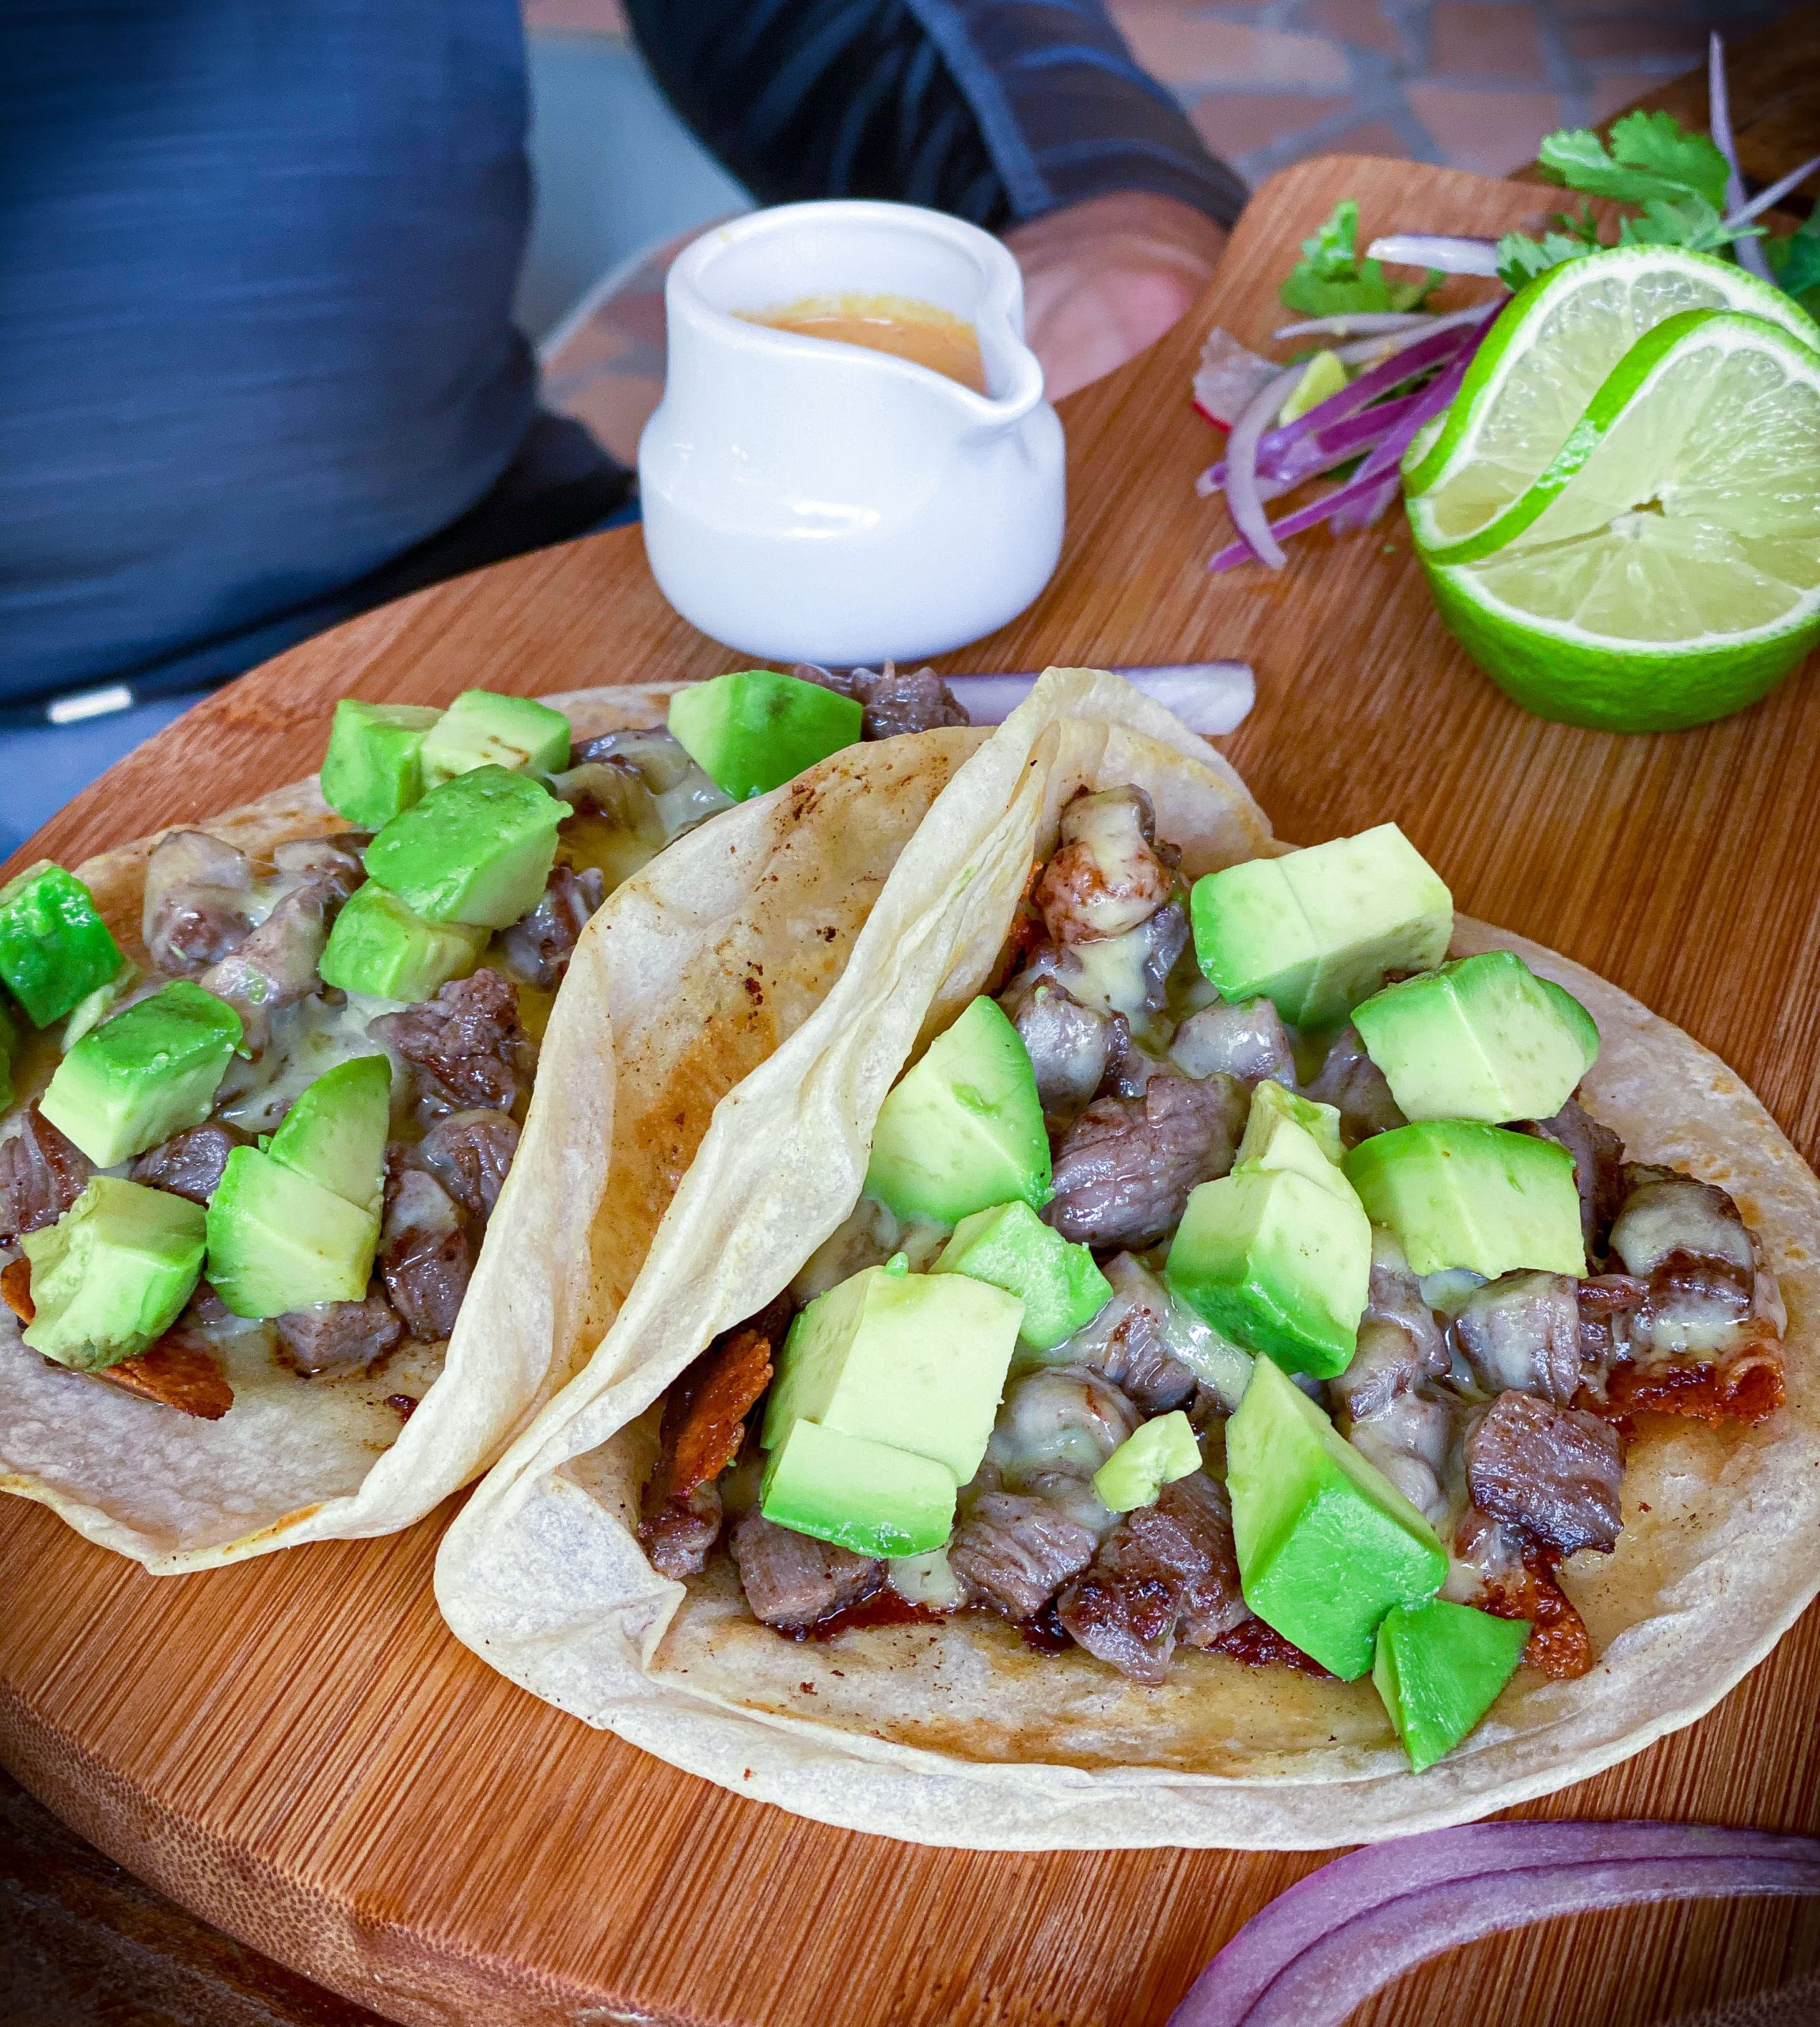 Steak and Avocado Tacos with Chipotle Sauce at Lido Beach Club in Playa Del Carmen, Mexico.